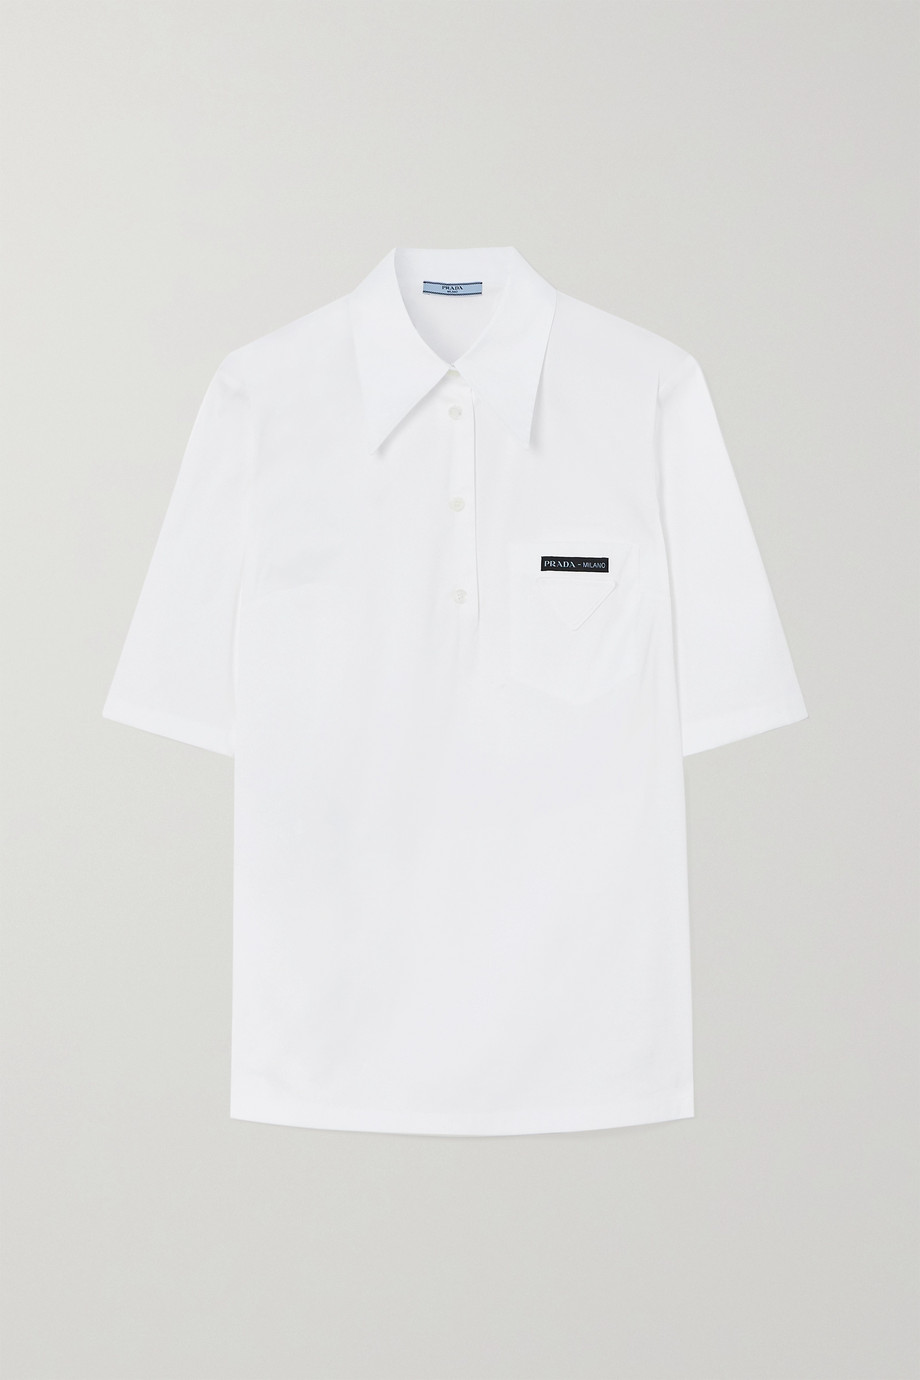 Prada Logo-appliquéd cotton-blend poplin shirt